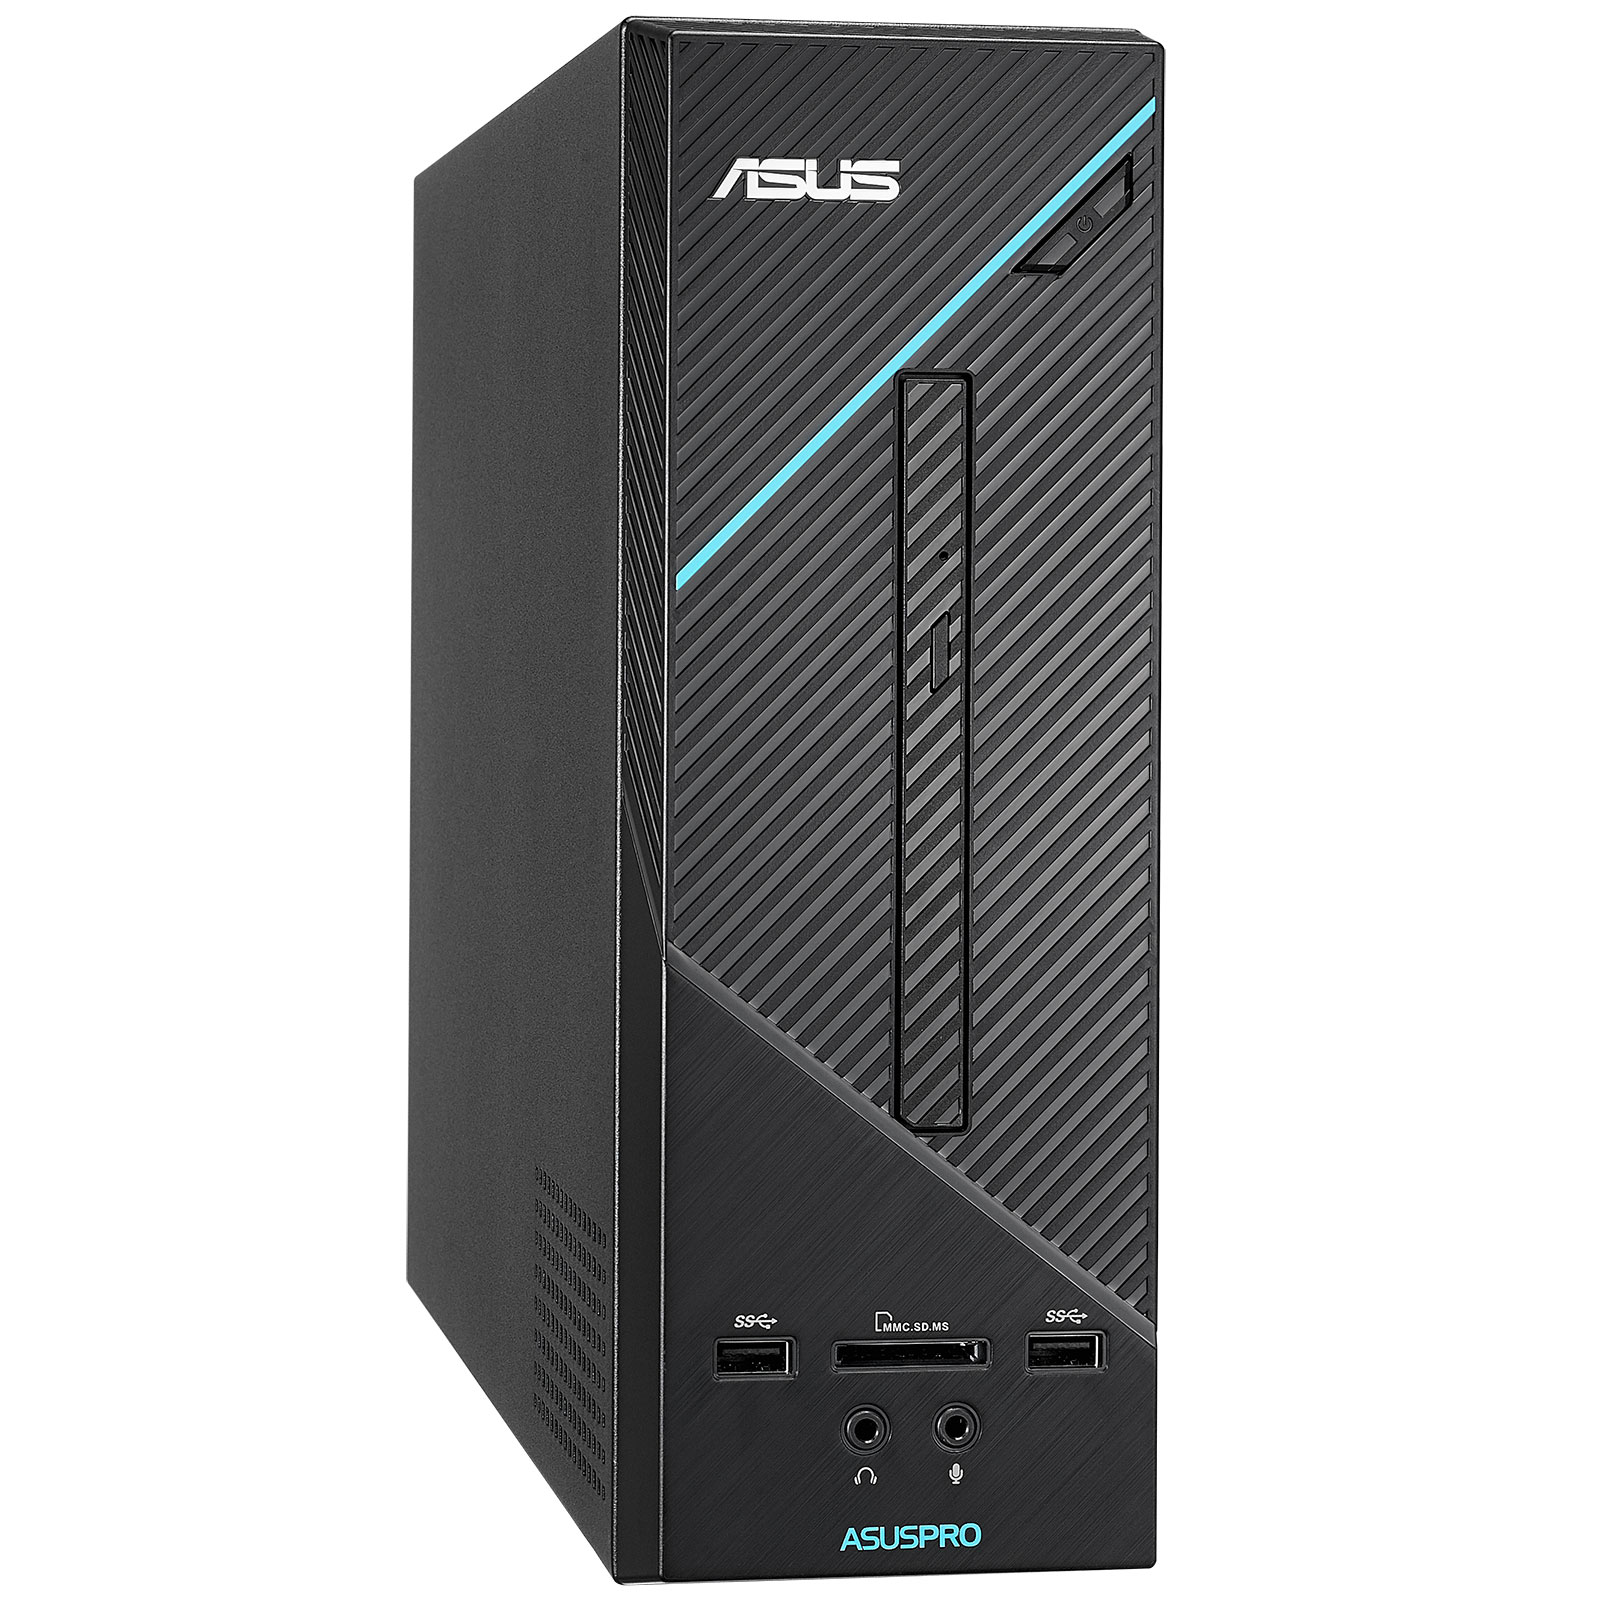 asus d320sf 0g44000034 pc de bureau asus sur ldlc. Black Bedroom Furniture Sets. Home Design Ideas